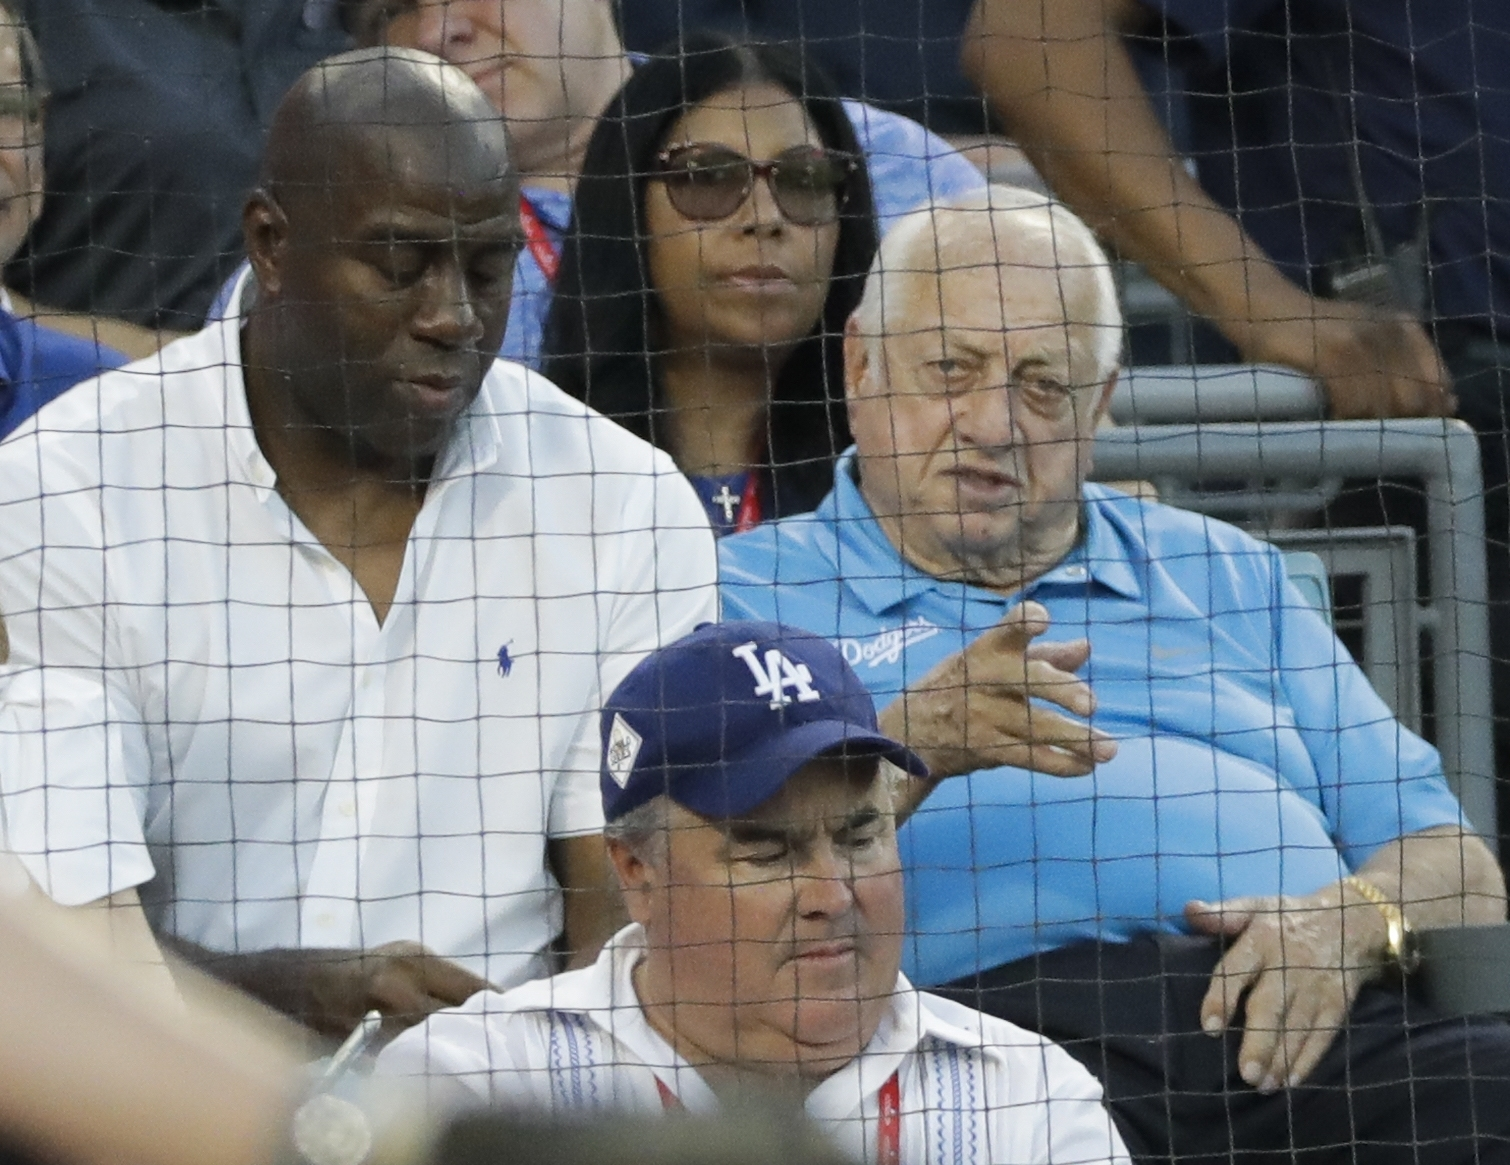 <div class='meta'><div class='origin-logo' data-origin='AP'></div><span class='caption-text' data-credit='(AP Photo/David J. Phillip)'>Magic Johnson and Tommy Lasorda watch during the second inning of Game 1 of baseball's World Series between the Houston Astros and the Los Angeles Dodgers Tuesday, Oct. 24, 2017.</span></div>